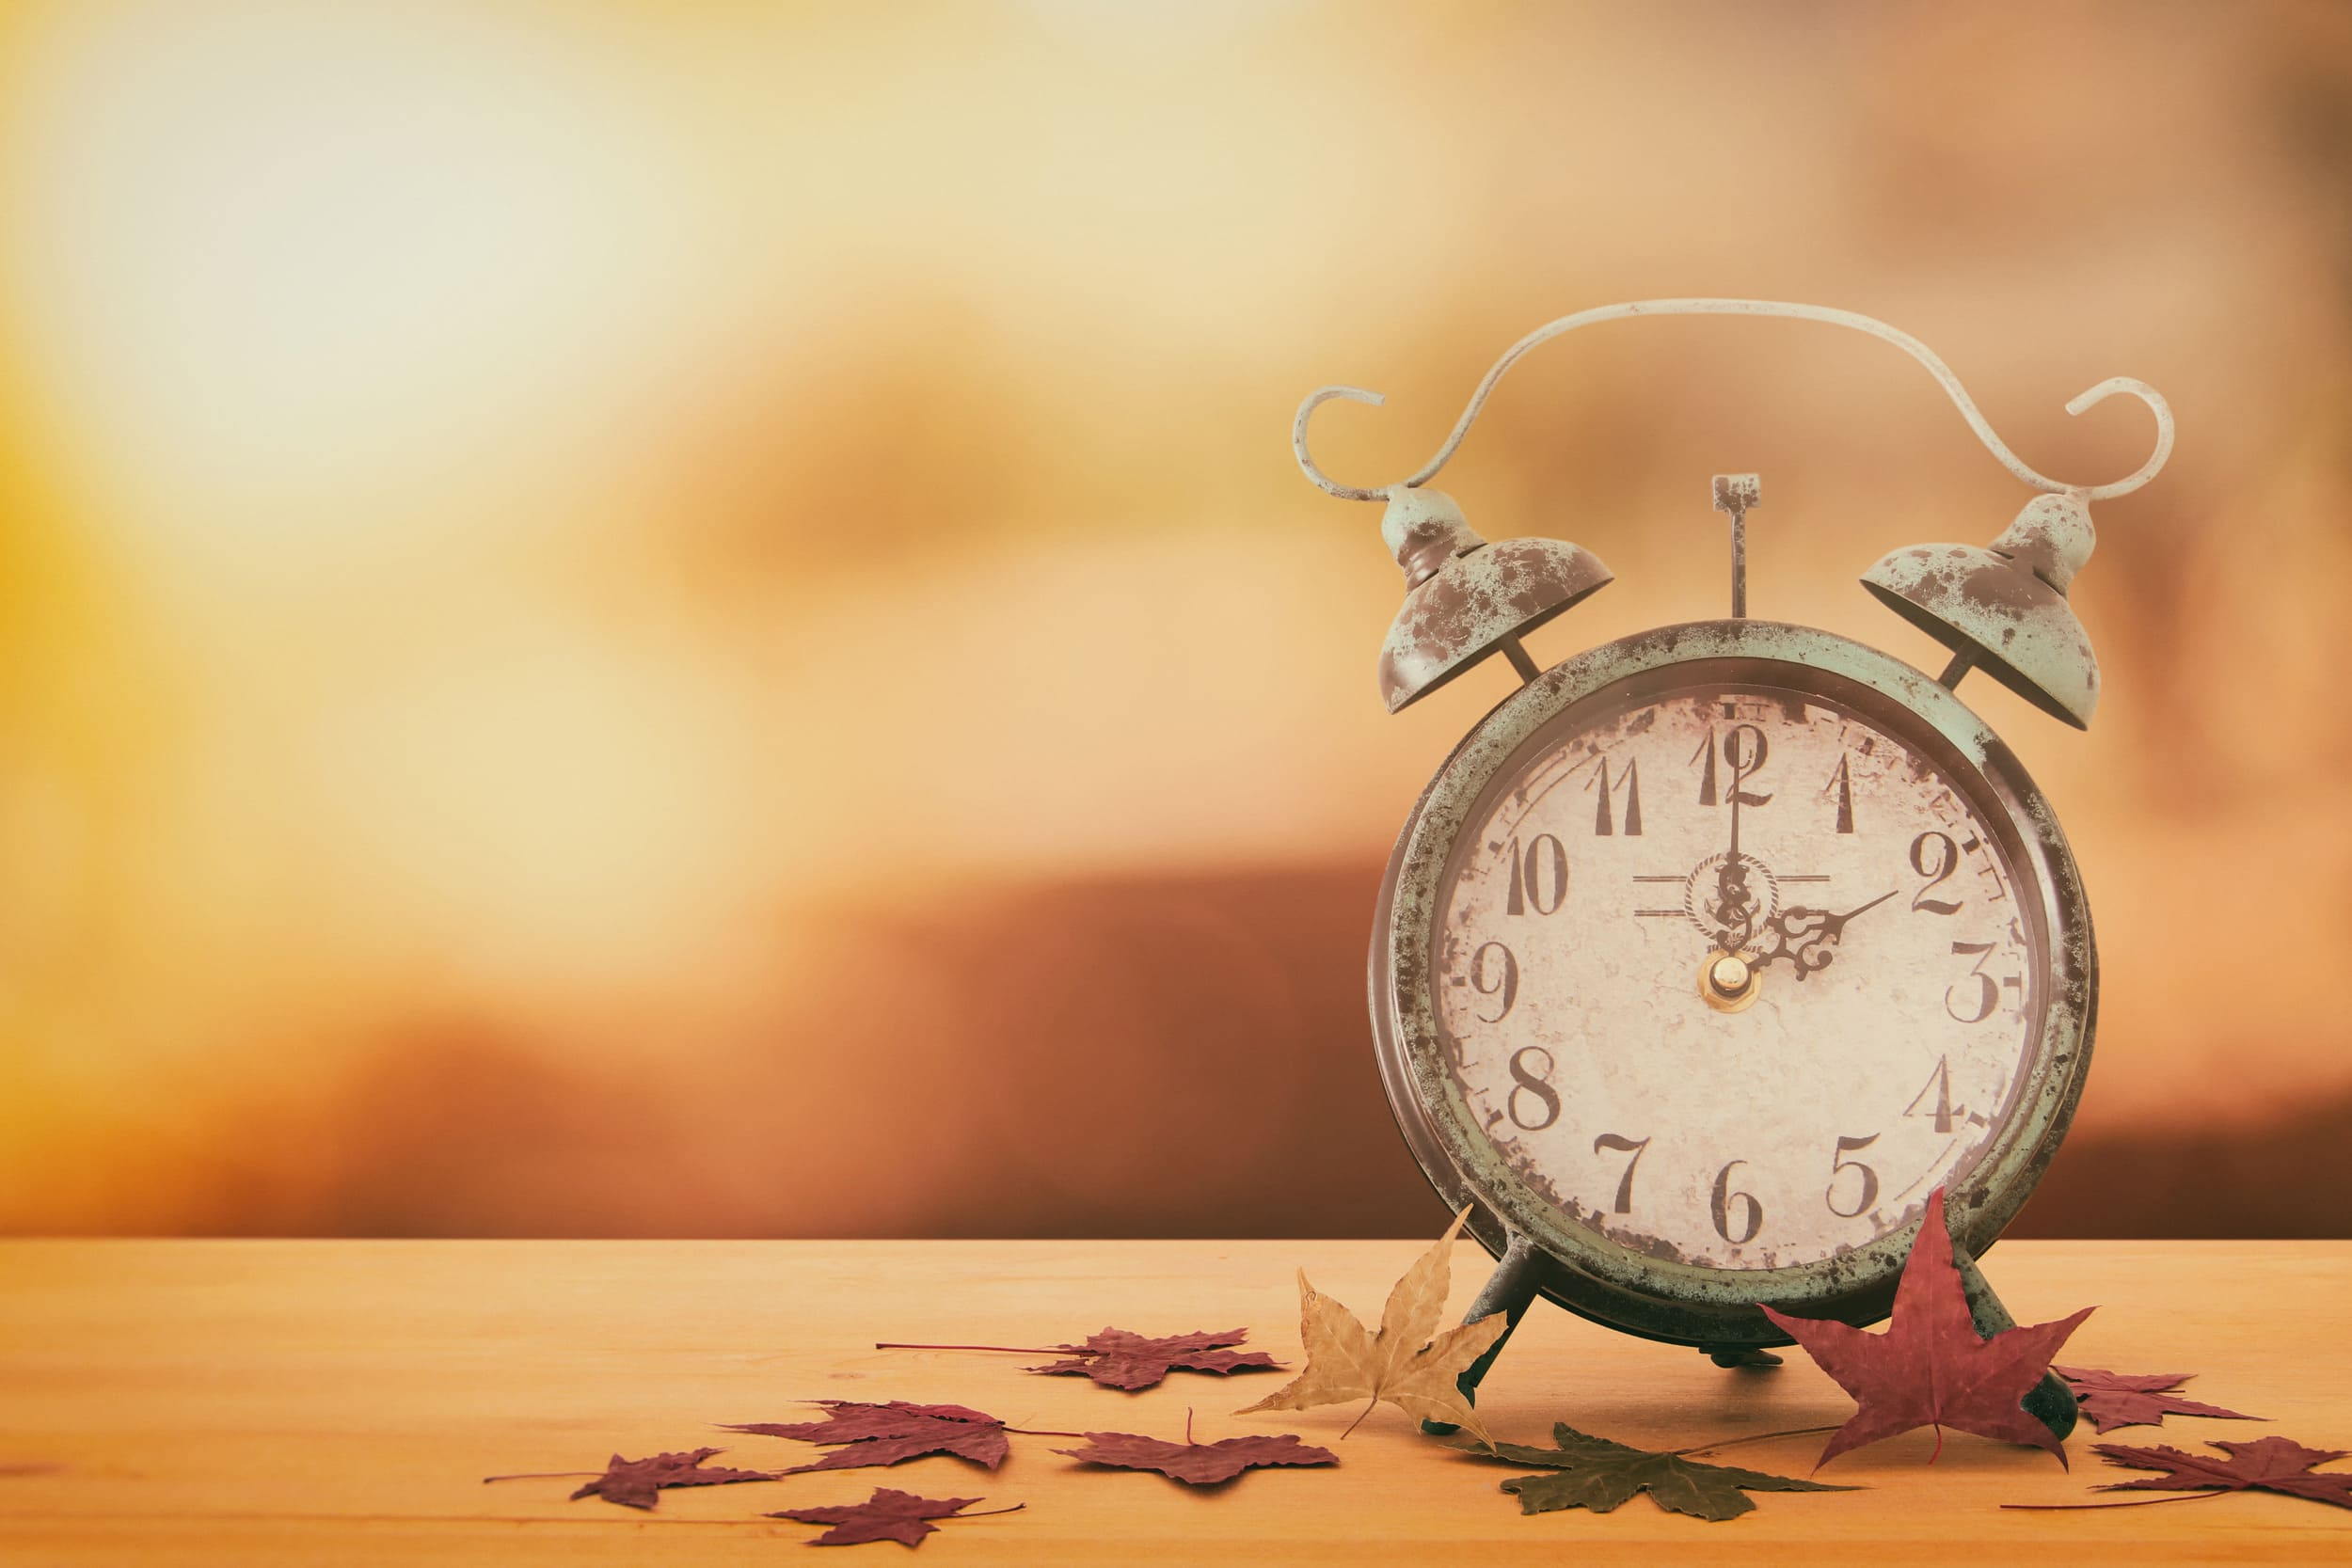 antique alarm clock on table surrounding by fall leaves with sunlight shining in the background